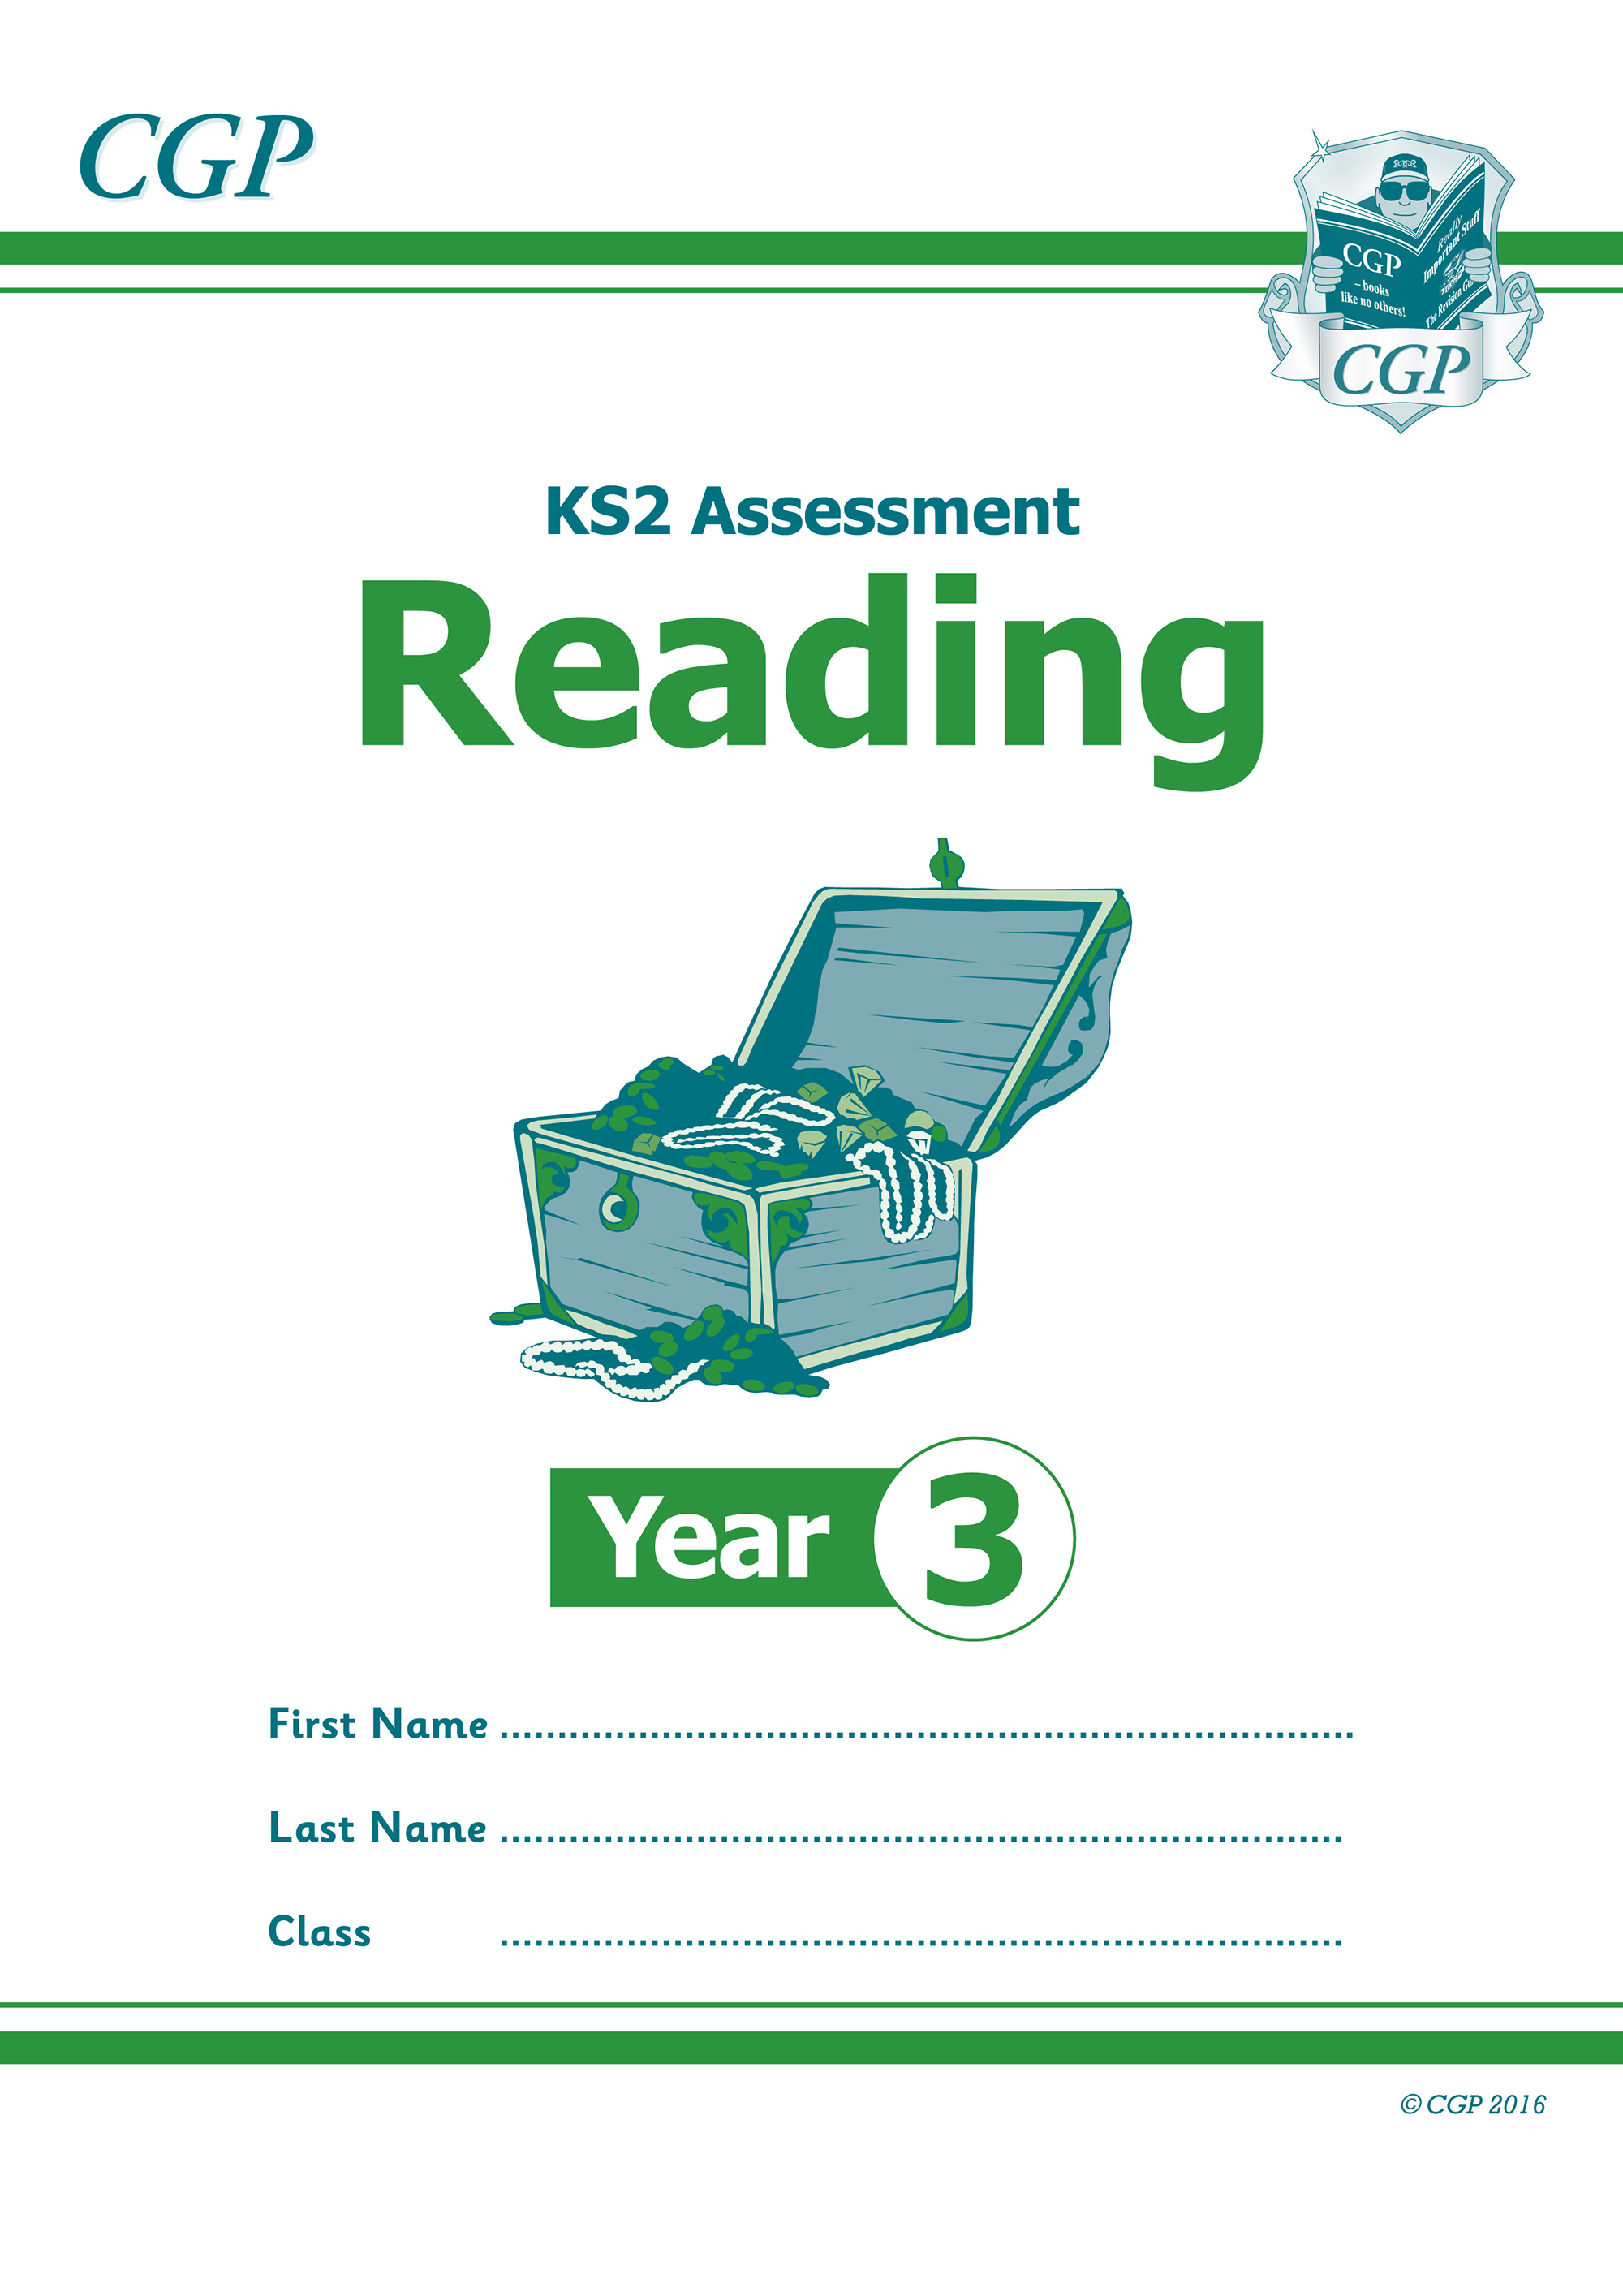 E3RP21 - KS2 Assessment: Reading - Year 3 Test